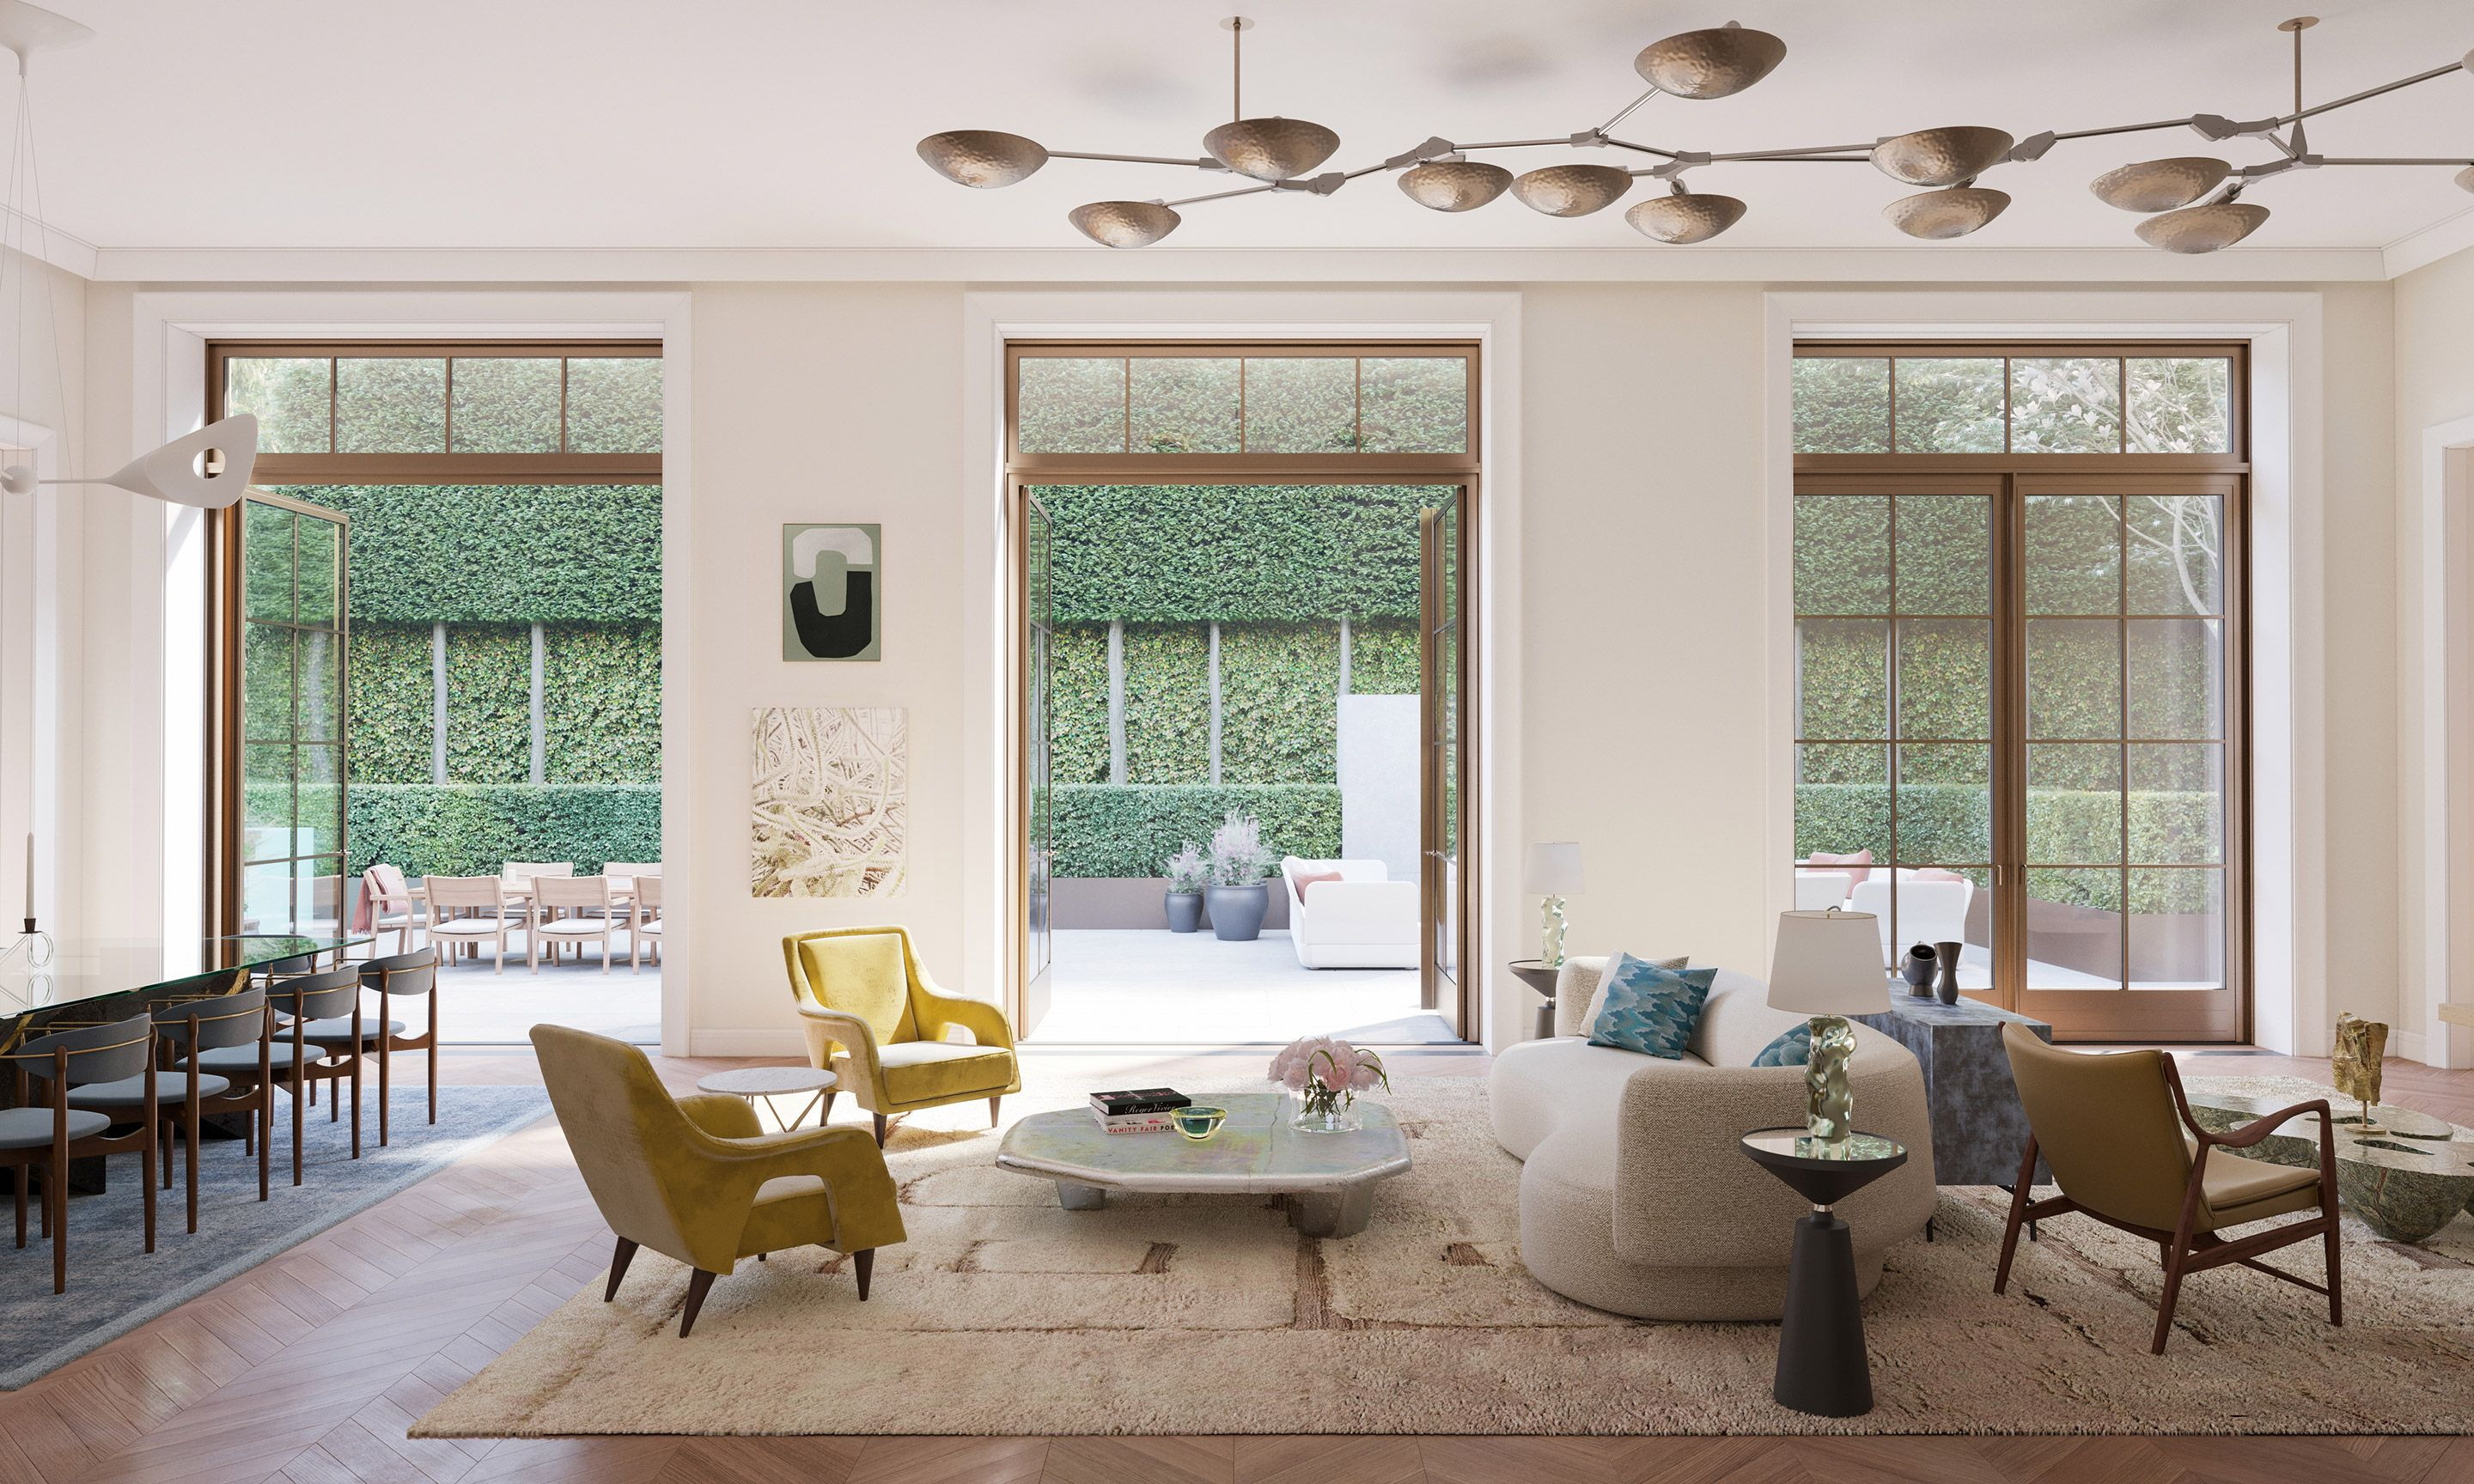 The Townhouse living room overlooking the private landscaped garden